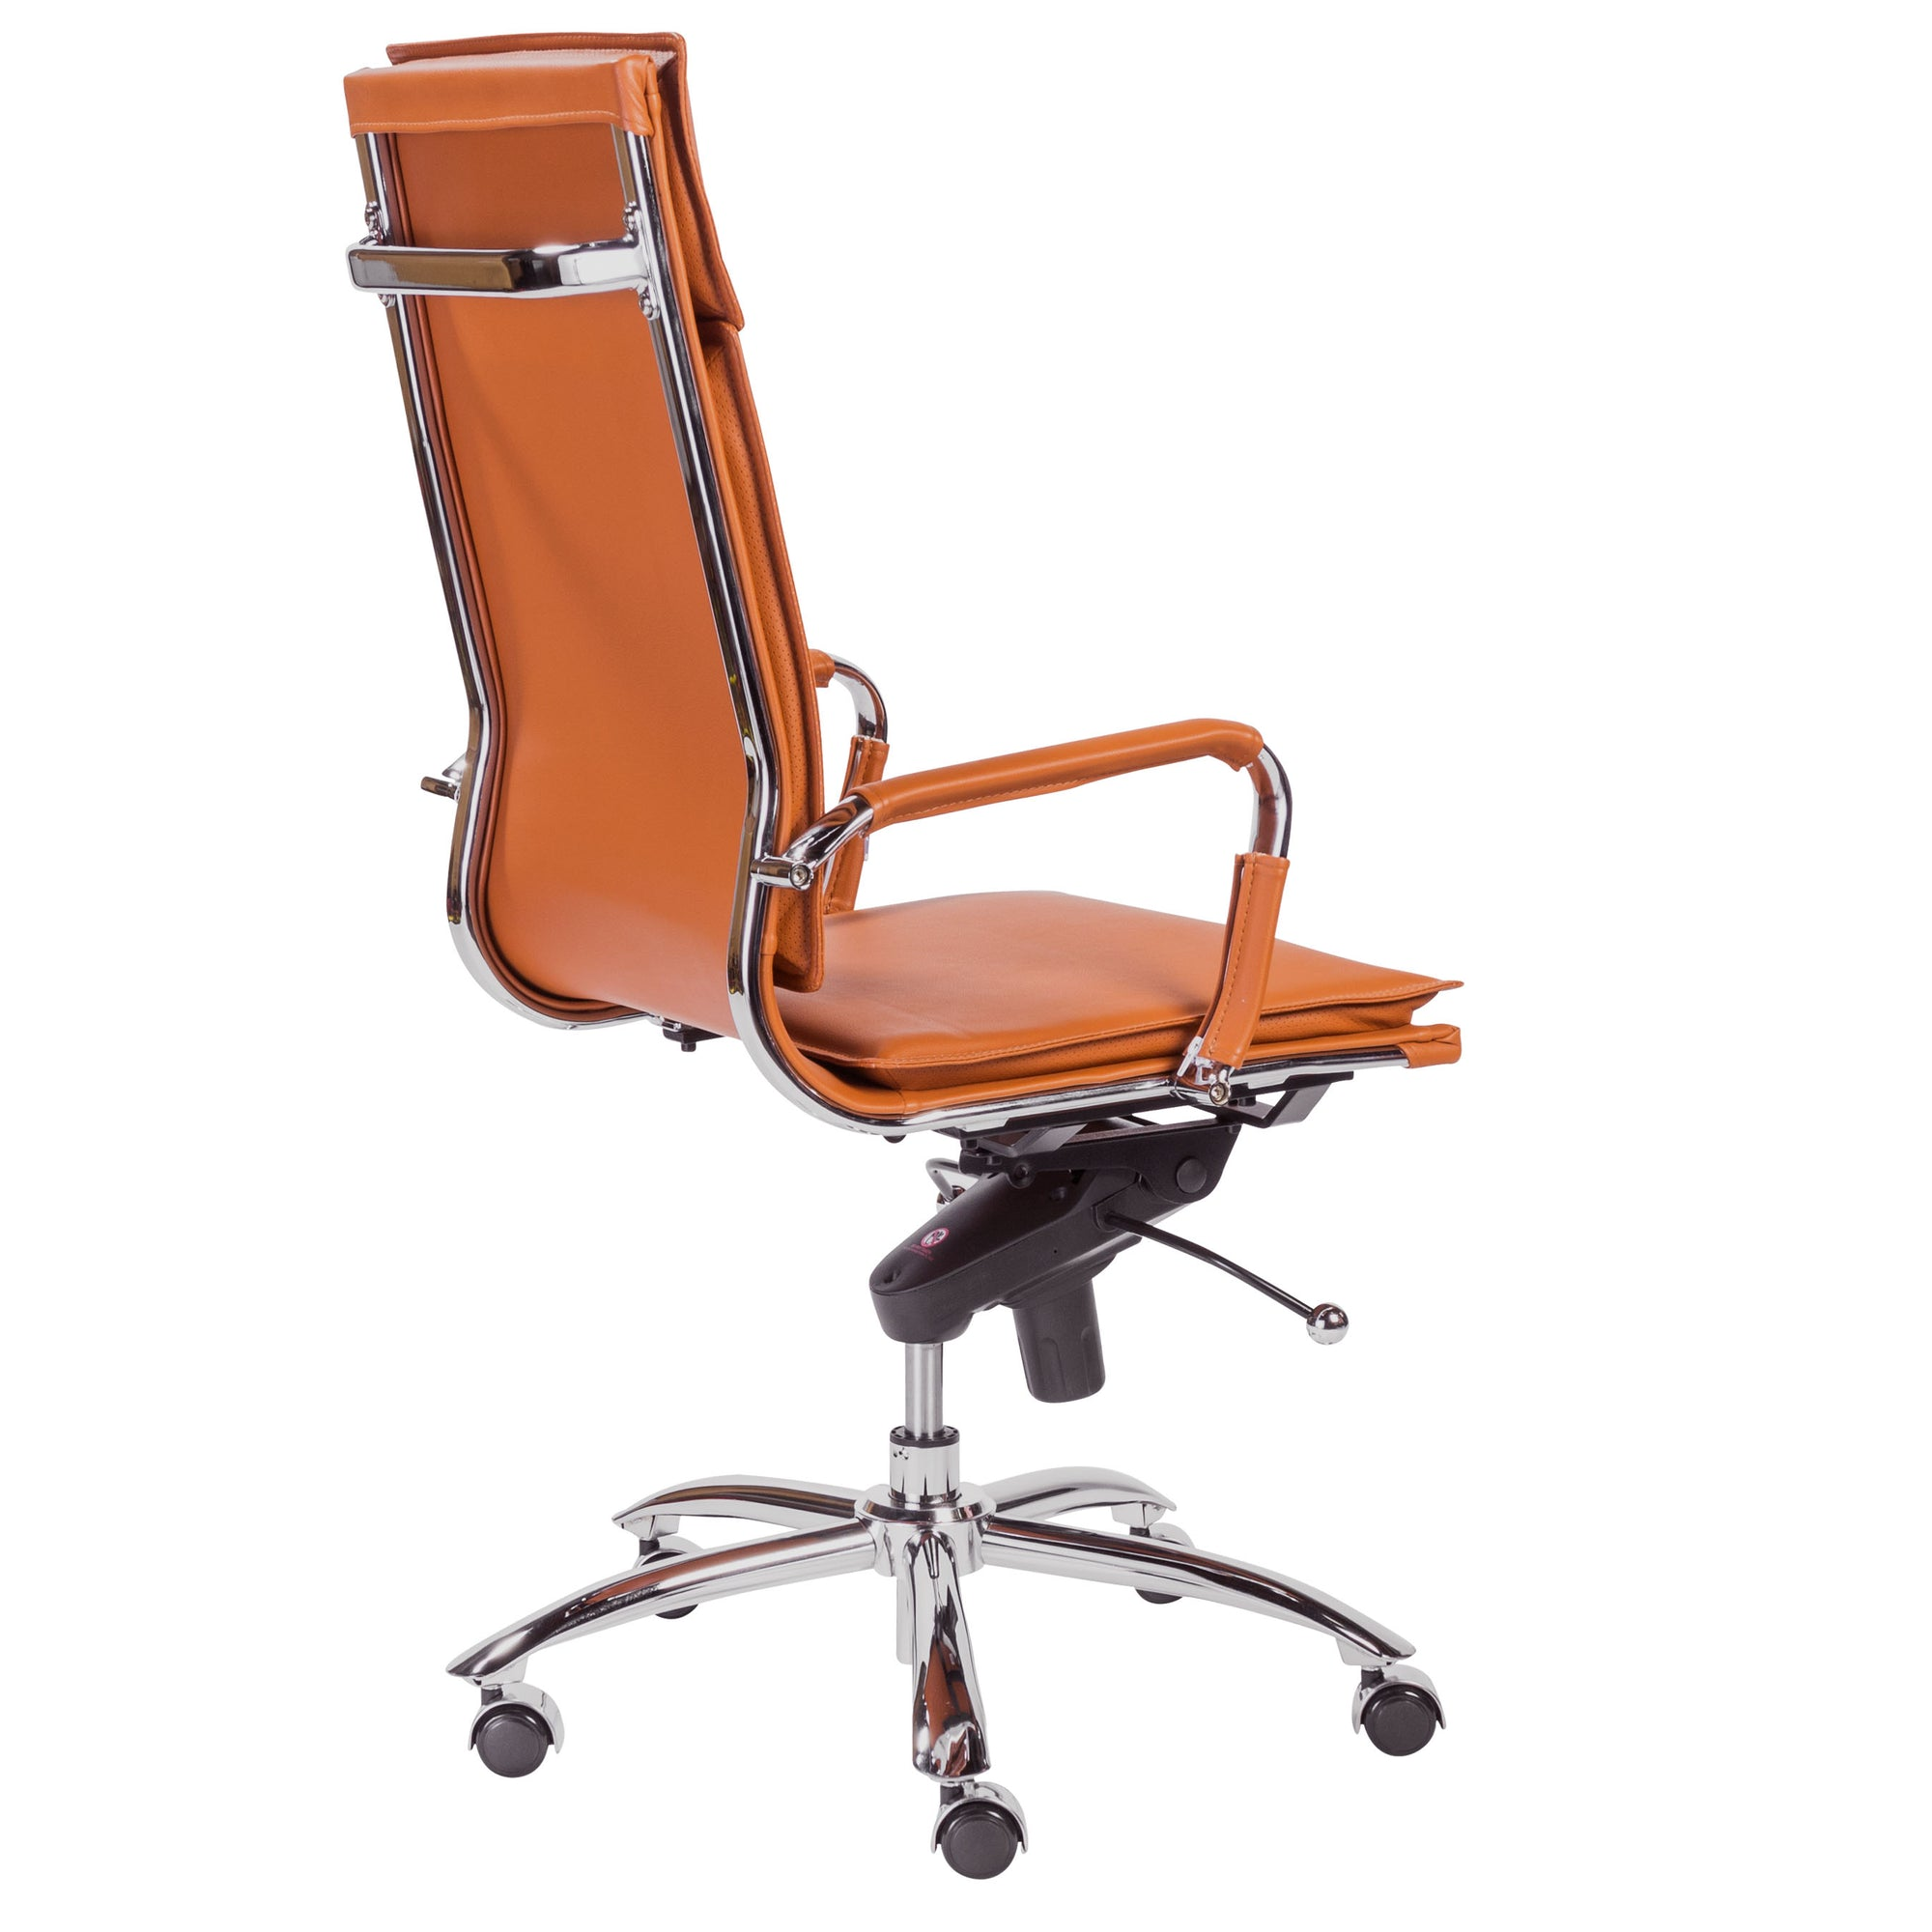 modern office chair leather. Gunar High Back Leather \u0026 Chrome Modern Office Chair In Cognac R